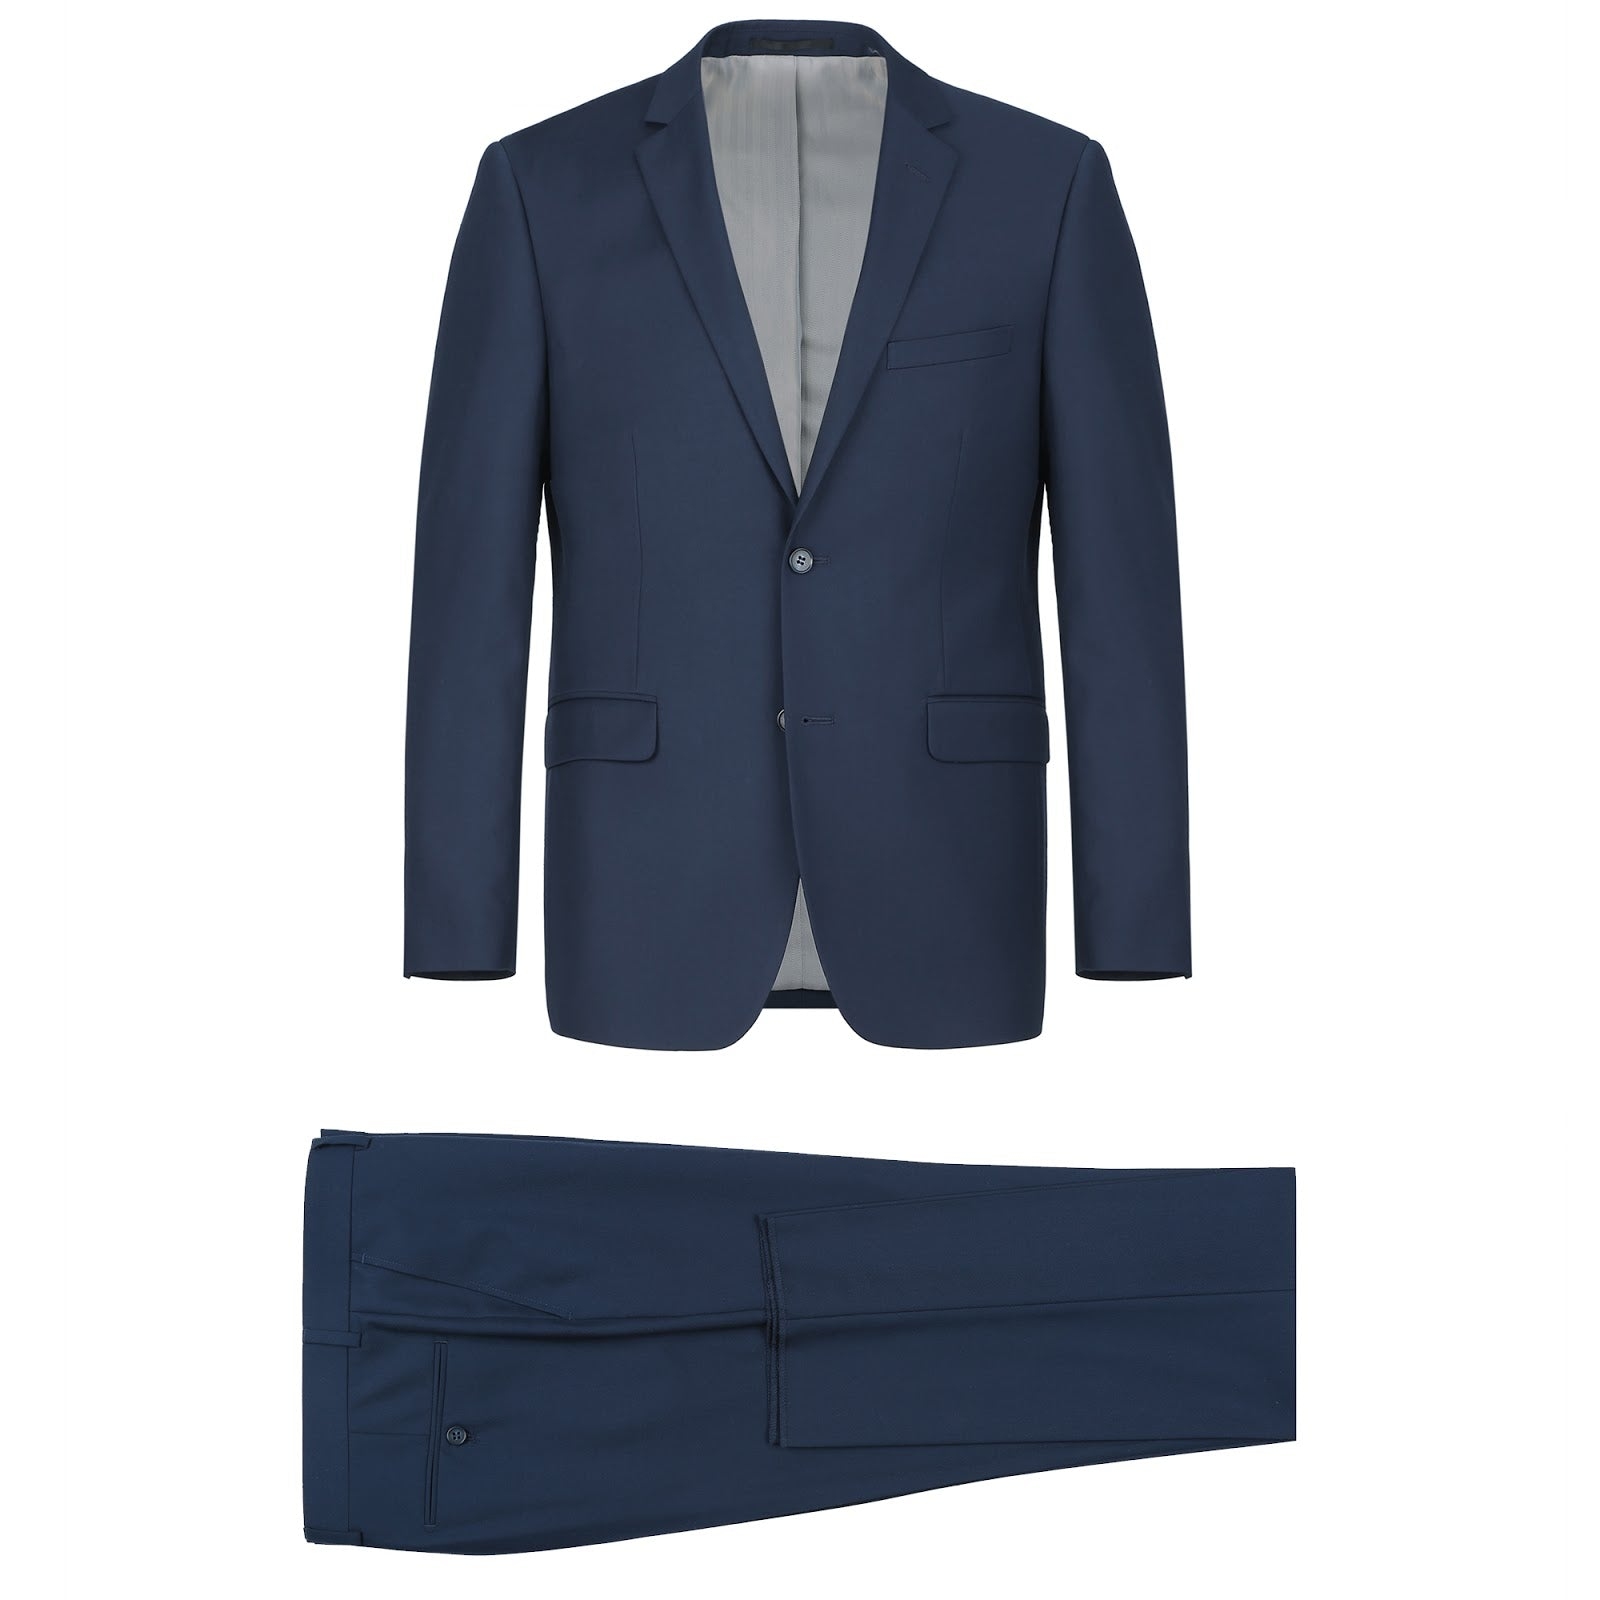 Rainwater's Fine tropical weight man made fabric Navy Slim Fit Suit - Rainwater's Men's Clothing and Tuxedo Rental